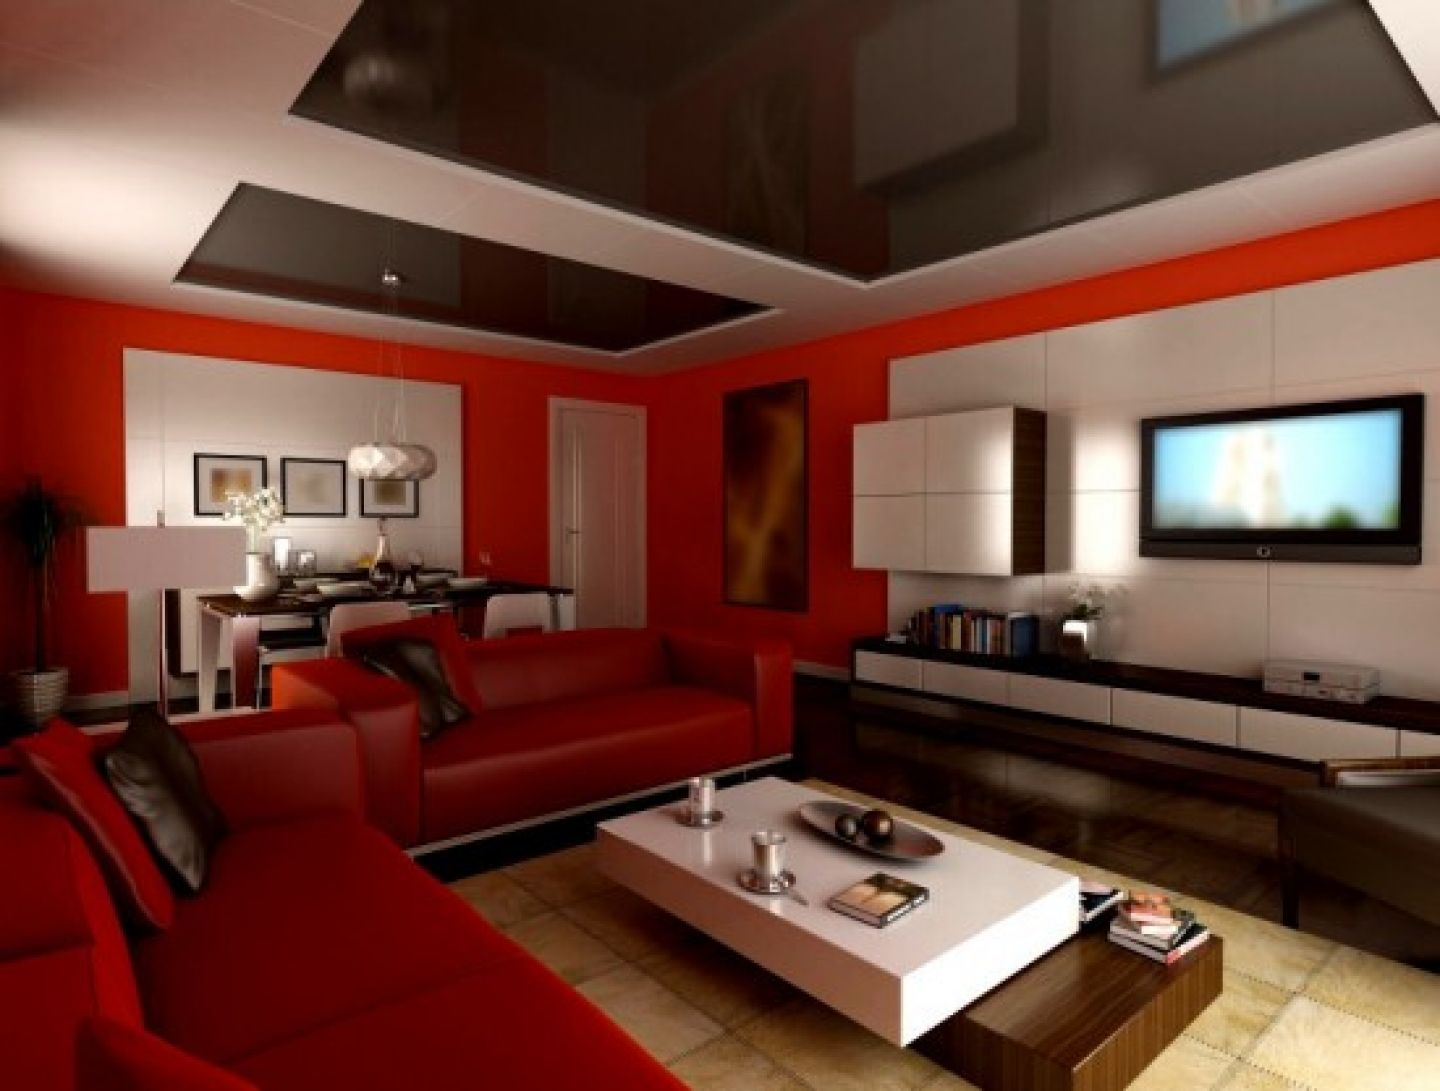 Design Living Room Paint Colors Ideas Modern Red White Living Room Delectable Interior Designs Ideas For The Living Room 2018